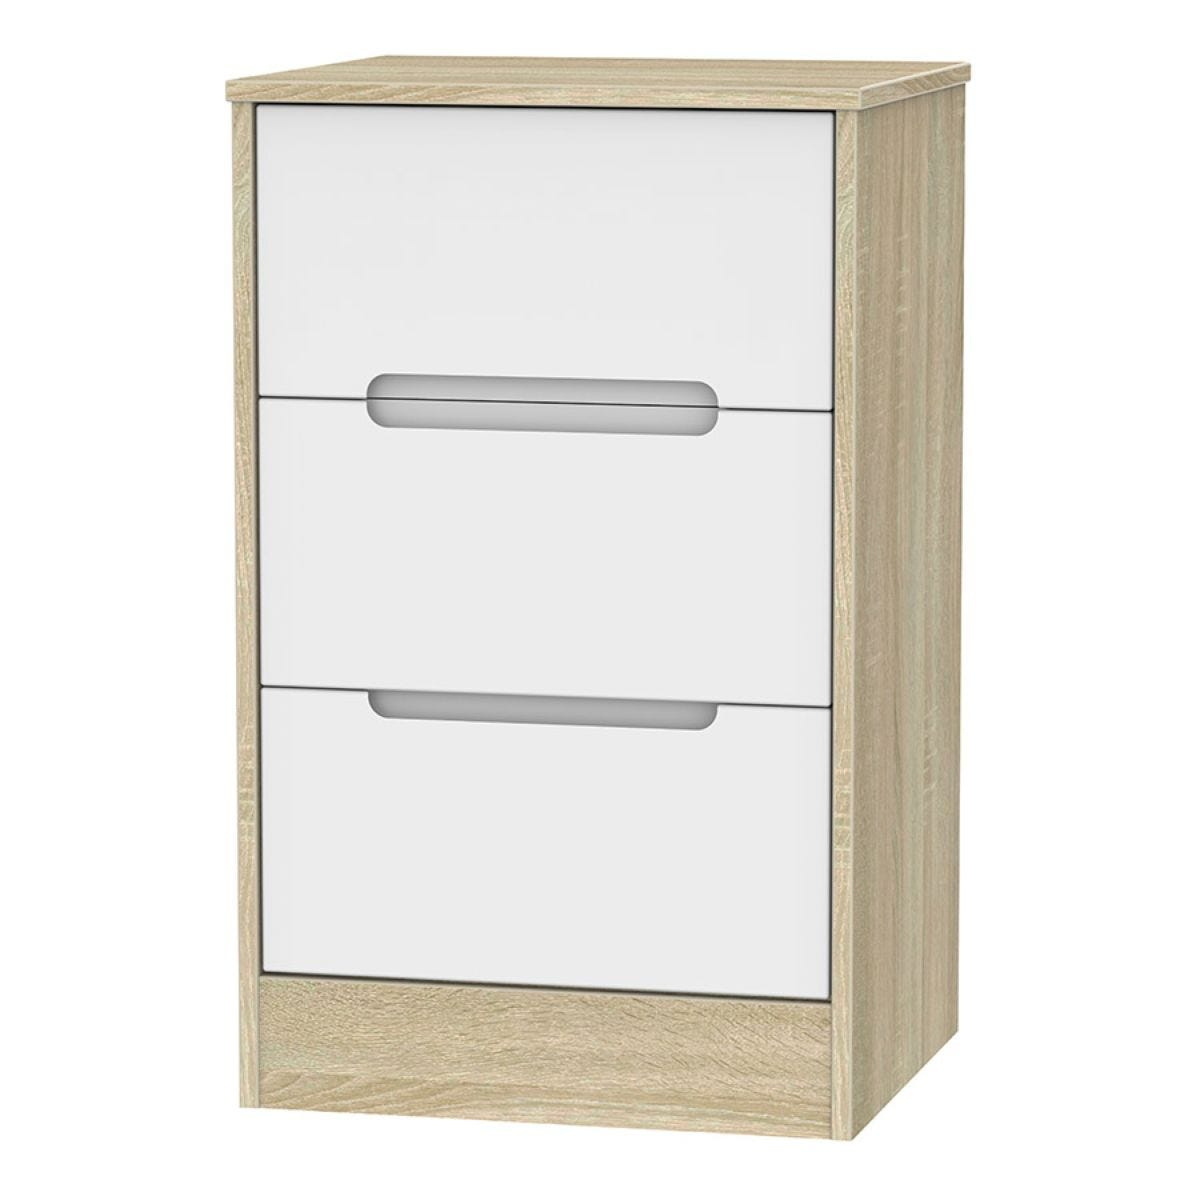 Barquero 3-Drawer Bedside Table - Pine/White Gloss